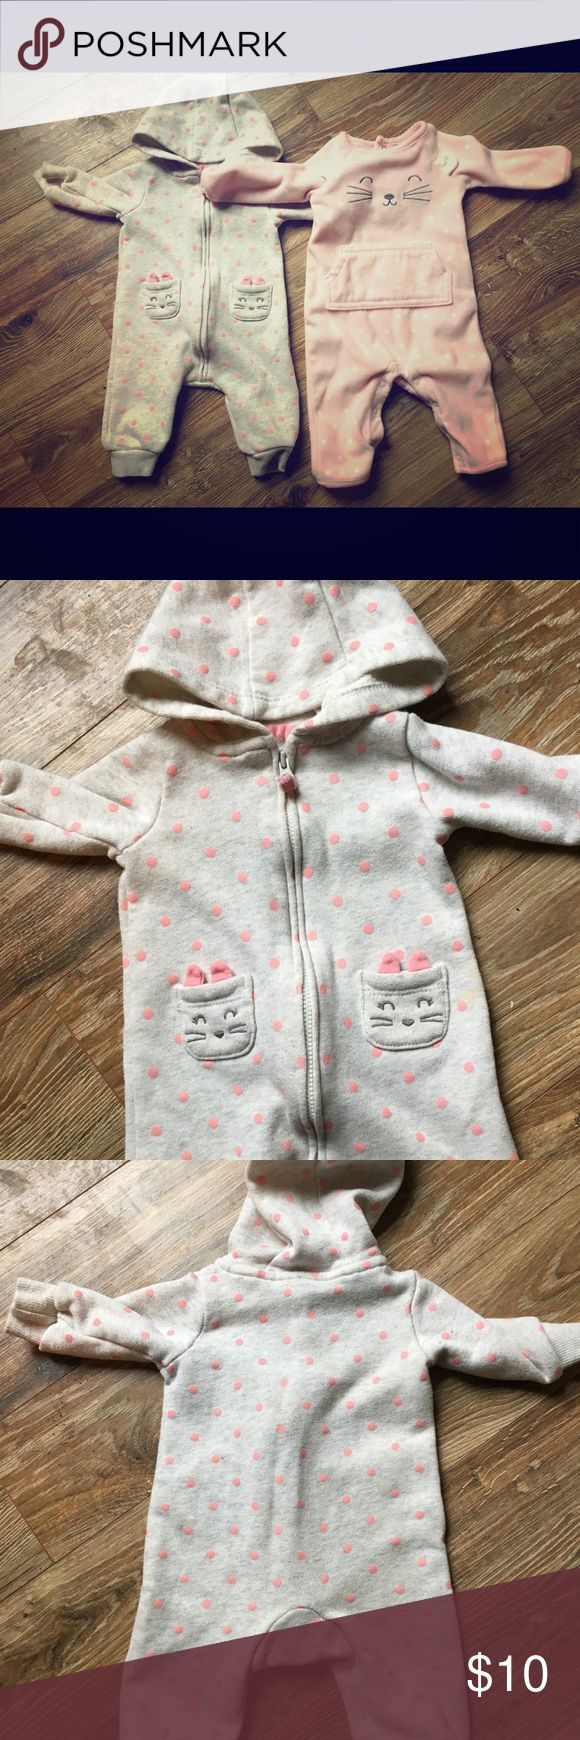 Baby Girl one piece fleece outfit Cute baby girl one piece outfits.  Grey outfit is 60% cotton and 40% polyester.  Pink one piece is 100% polyester. Carter's One Pieces Bodysuits